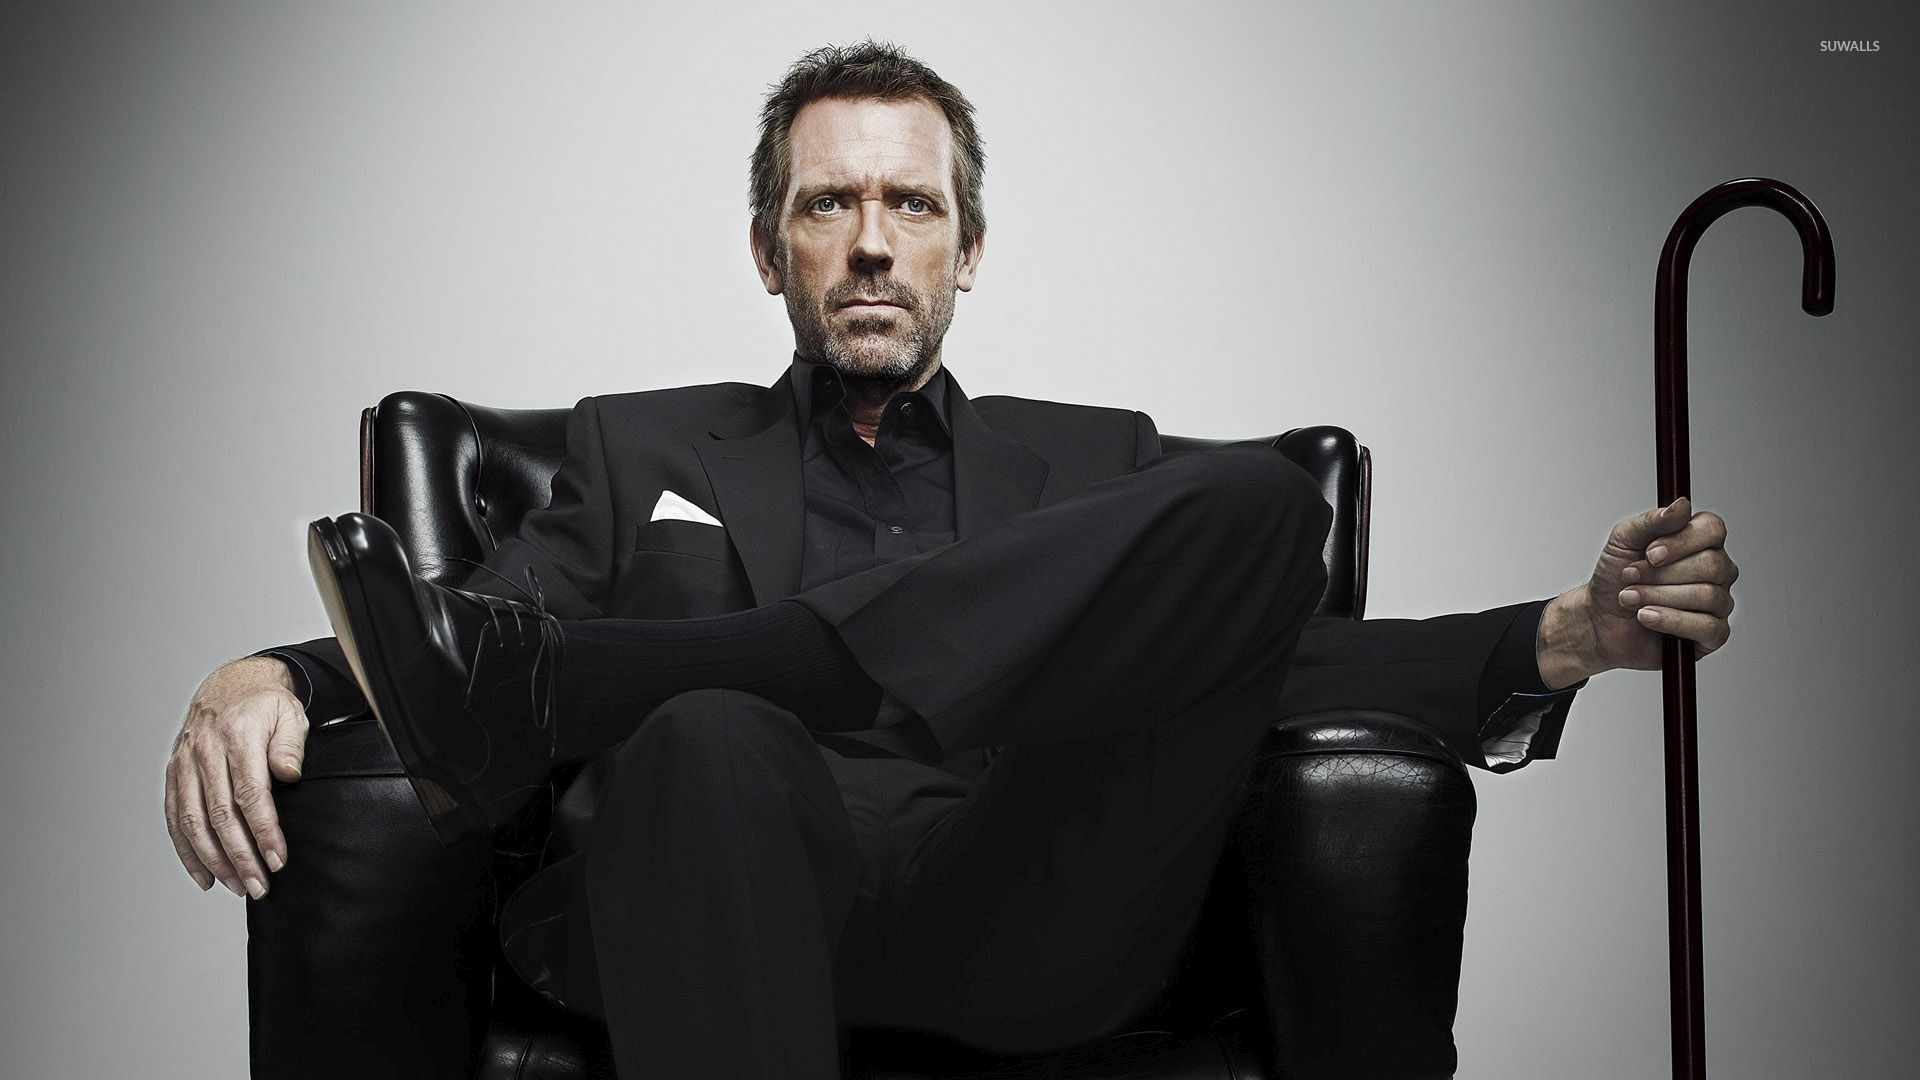 download wallpaper dr house - photo #15